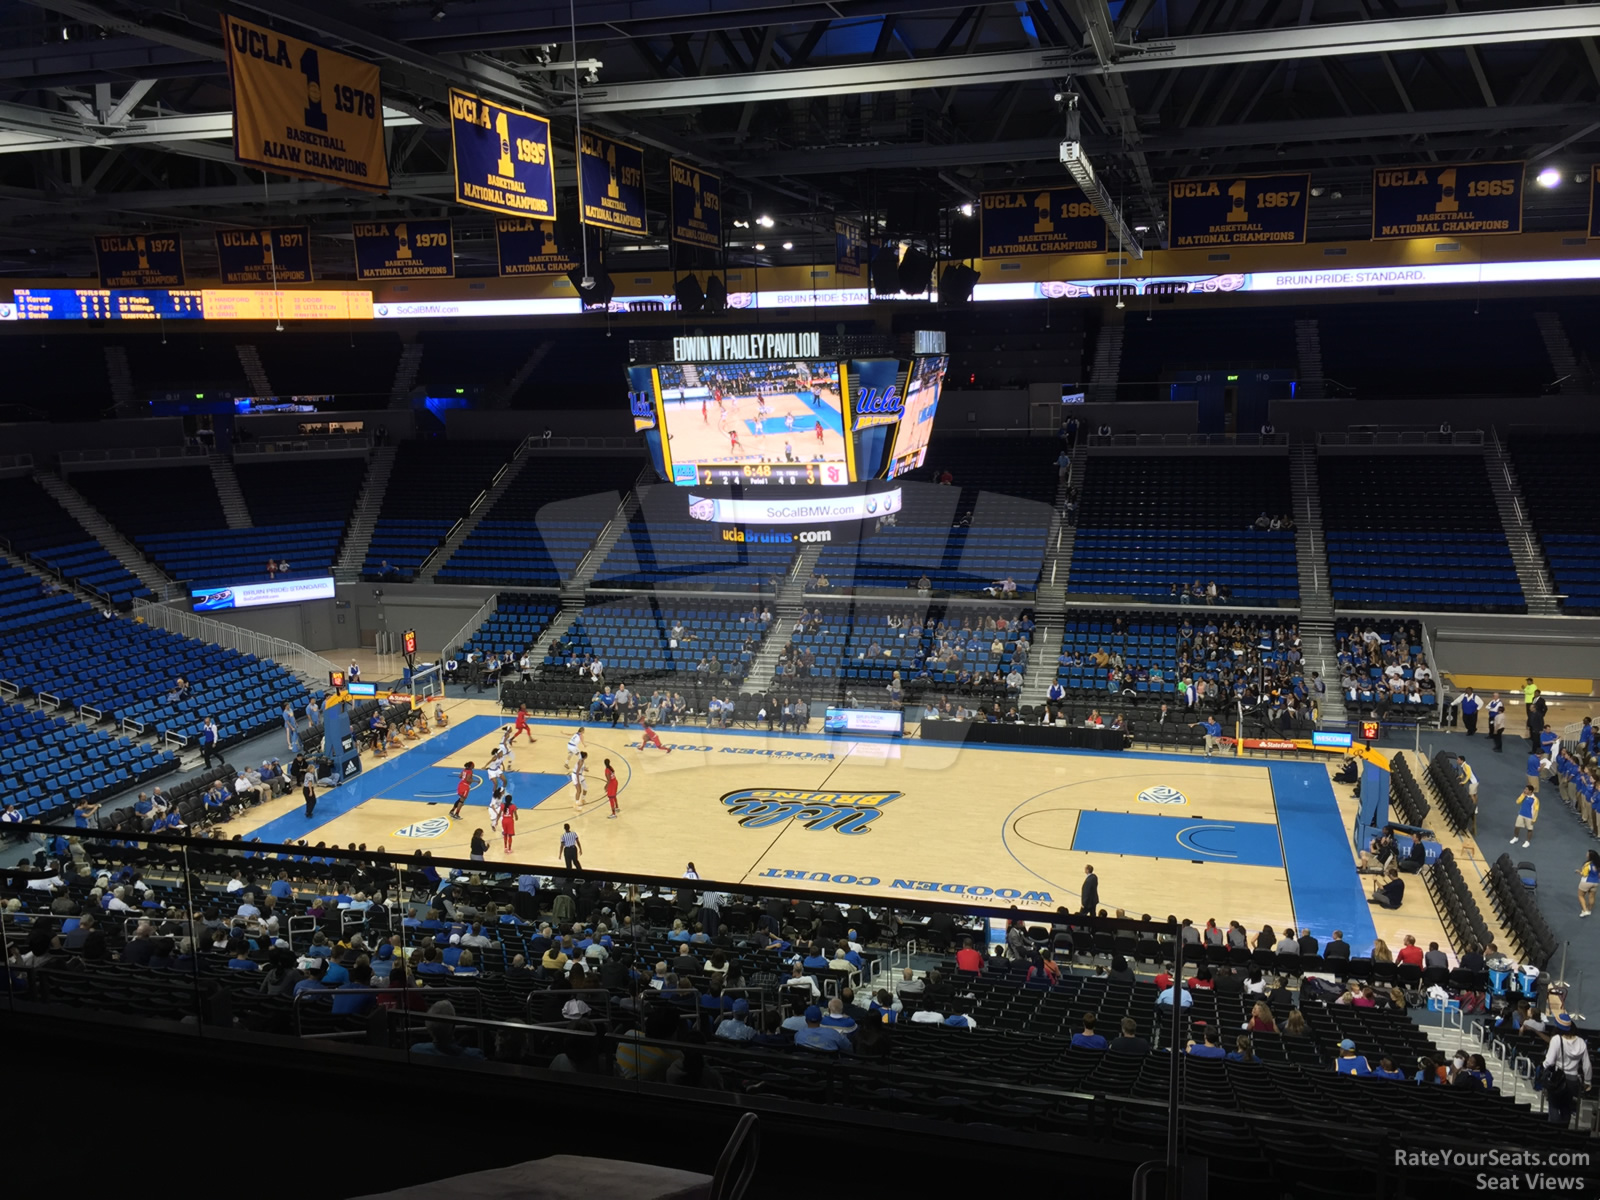 Seat View for Pauley Pavilion Section 201, Row 6